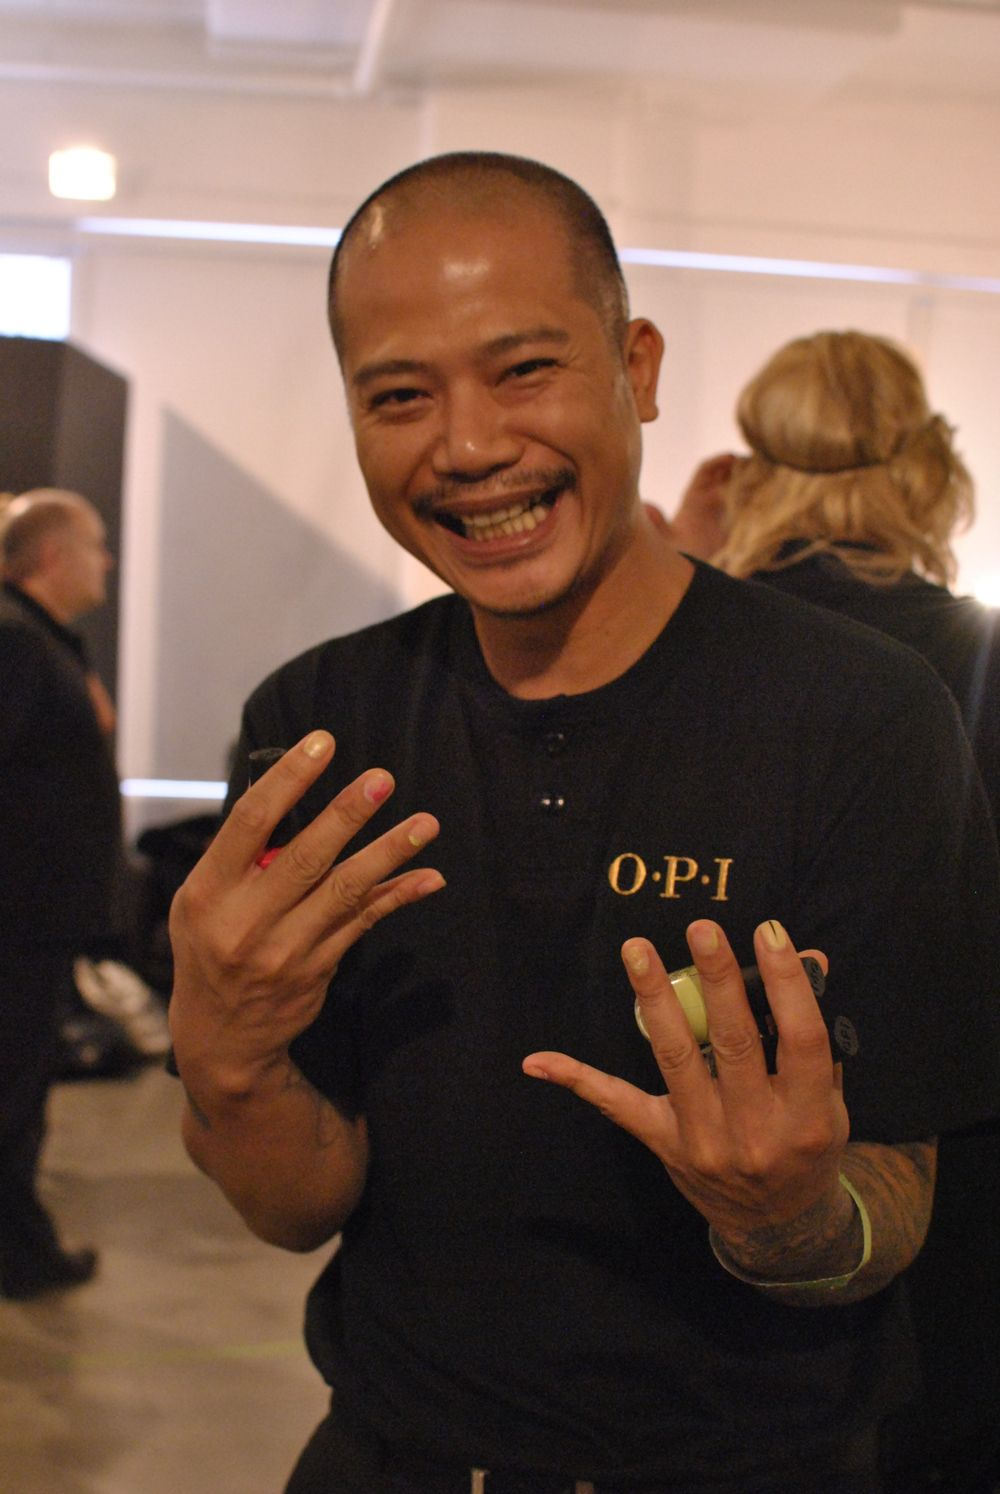 <p>OPI' Vu Nguyen was on hand to help out at Fashion Week.&nbsp;</p>